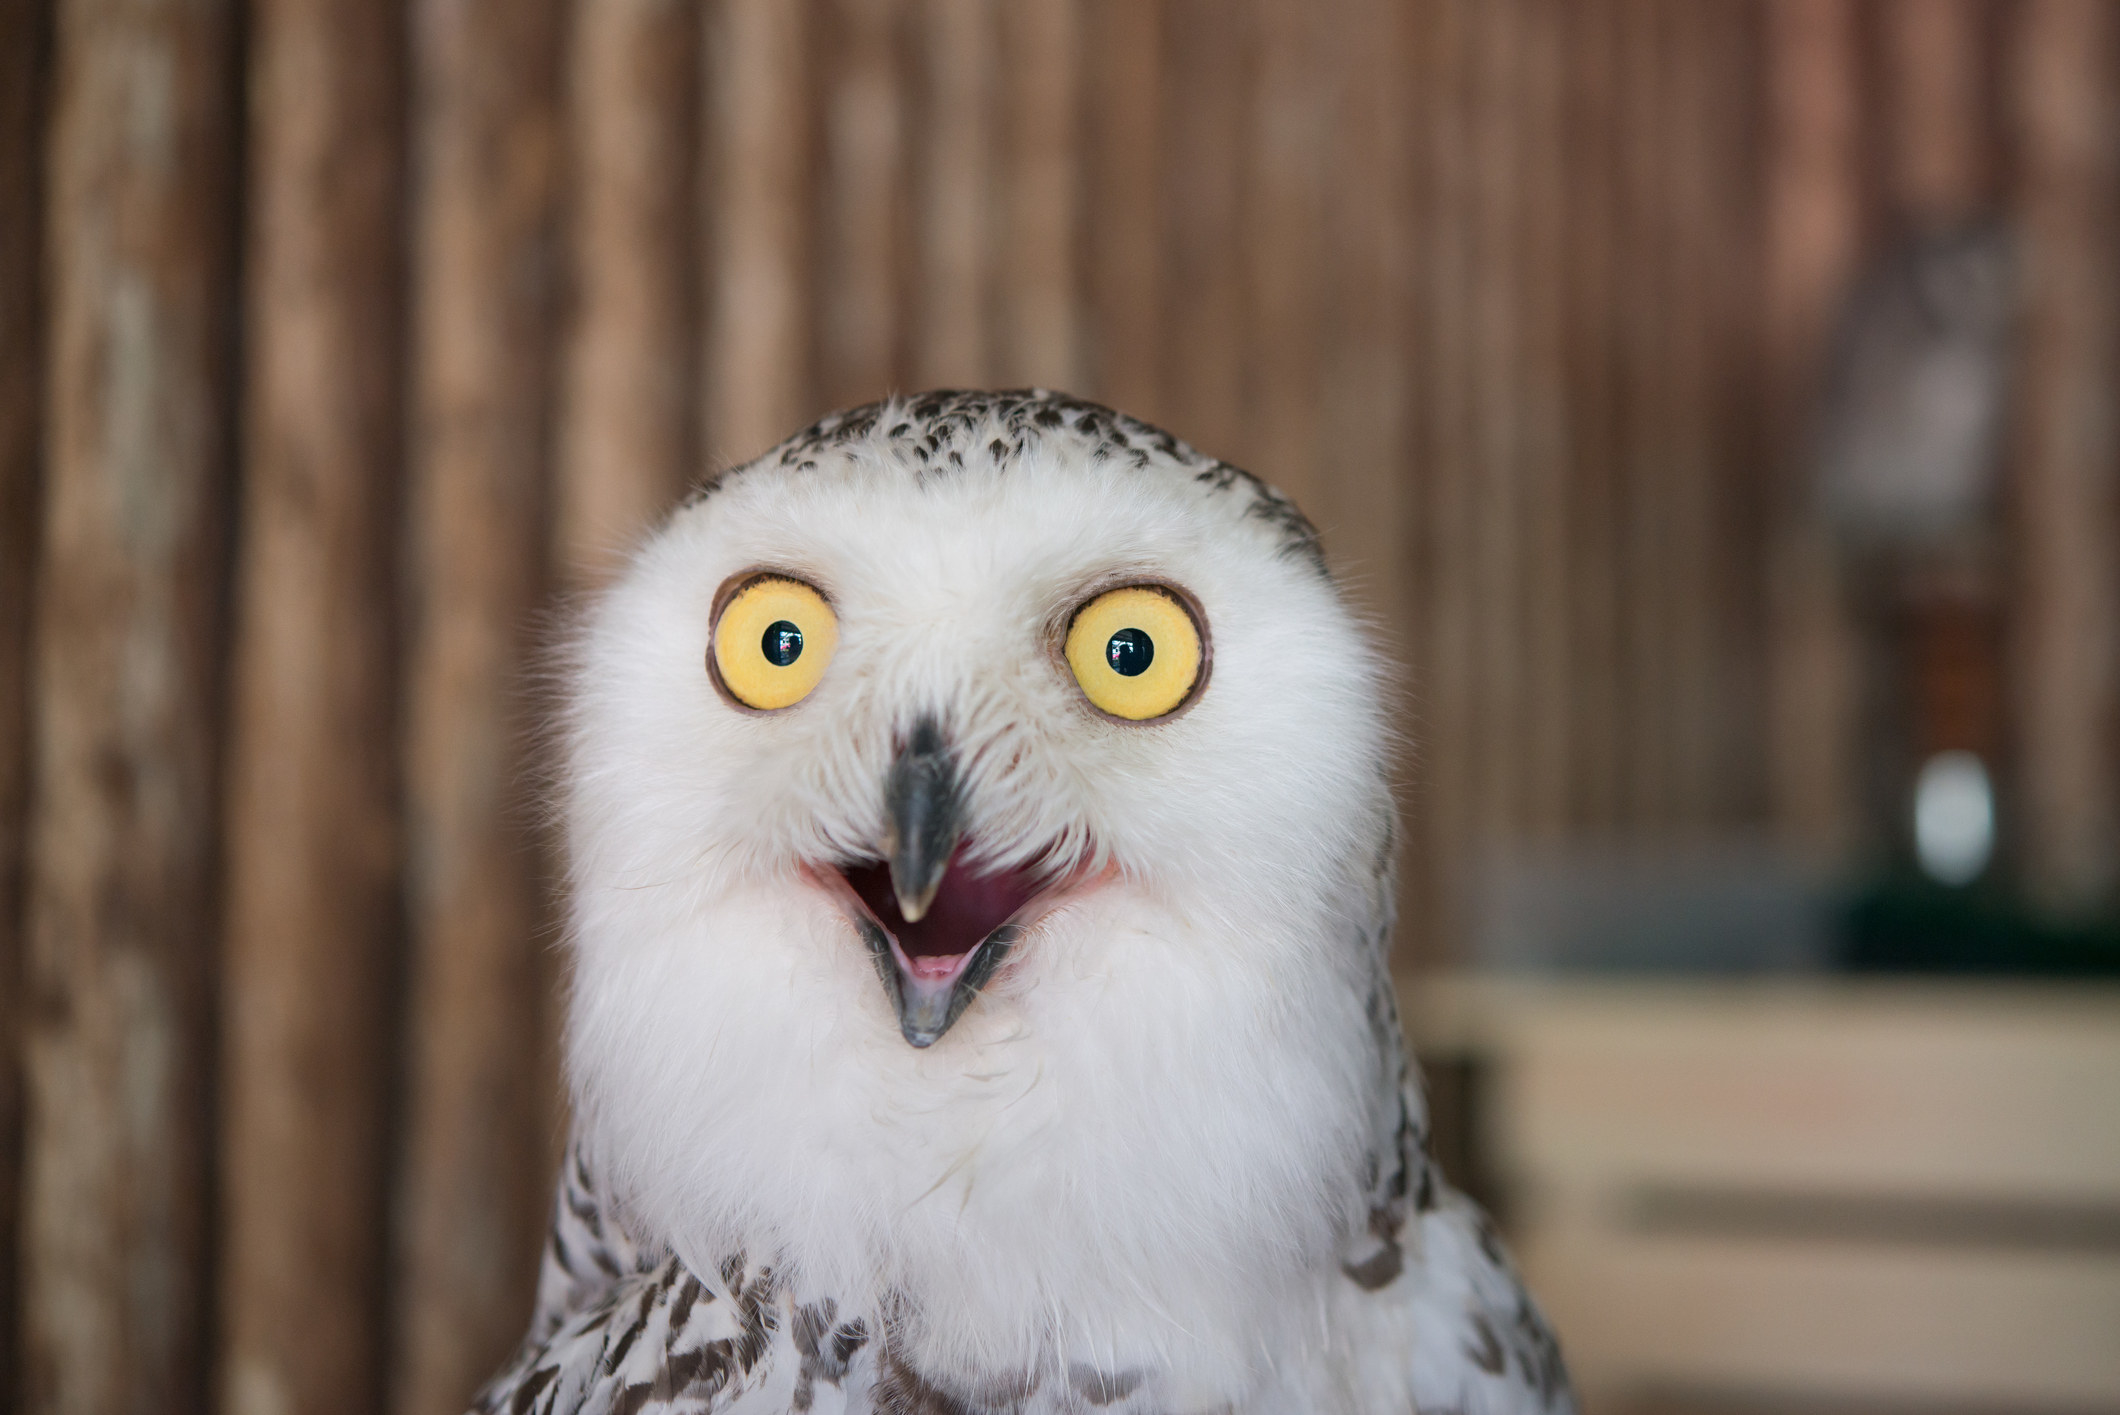 owl staring straight at you with creepy face and wide eyes